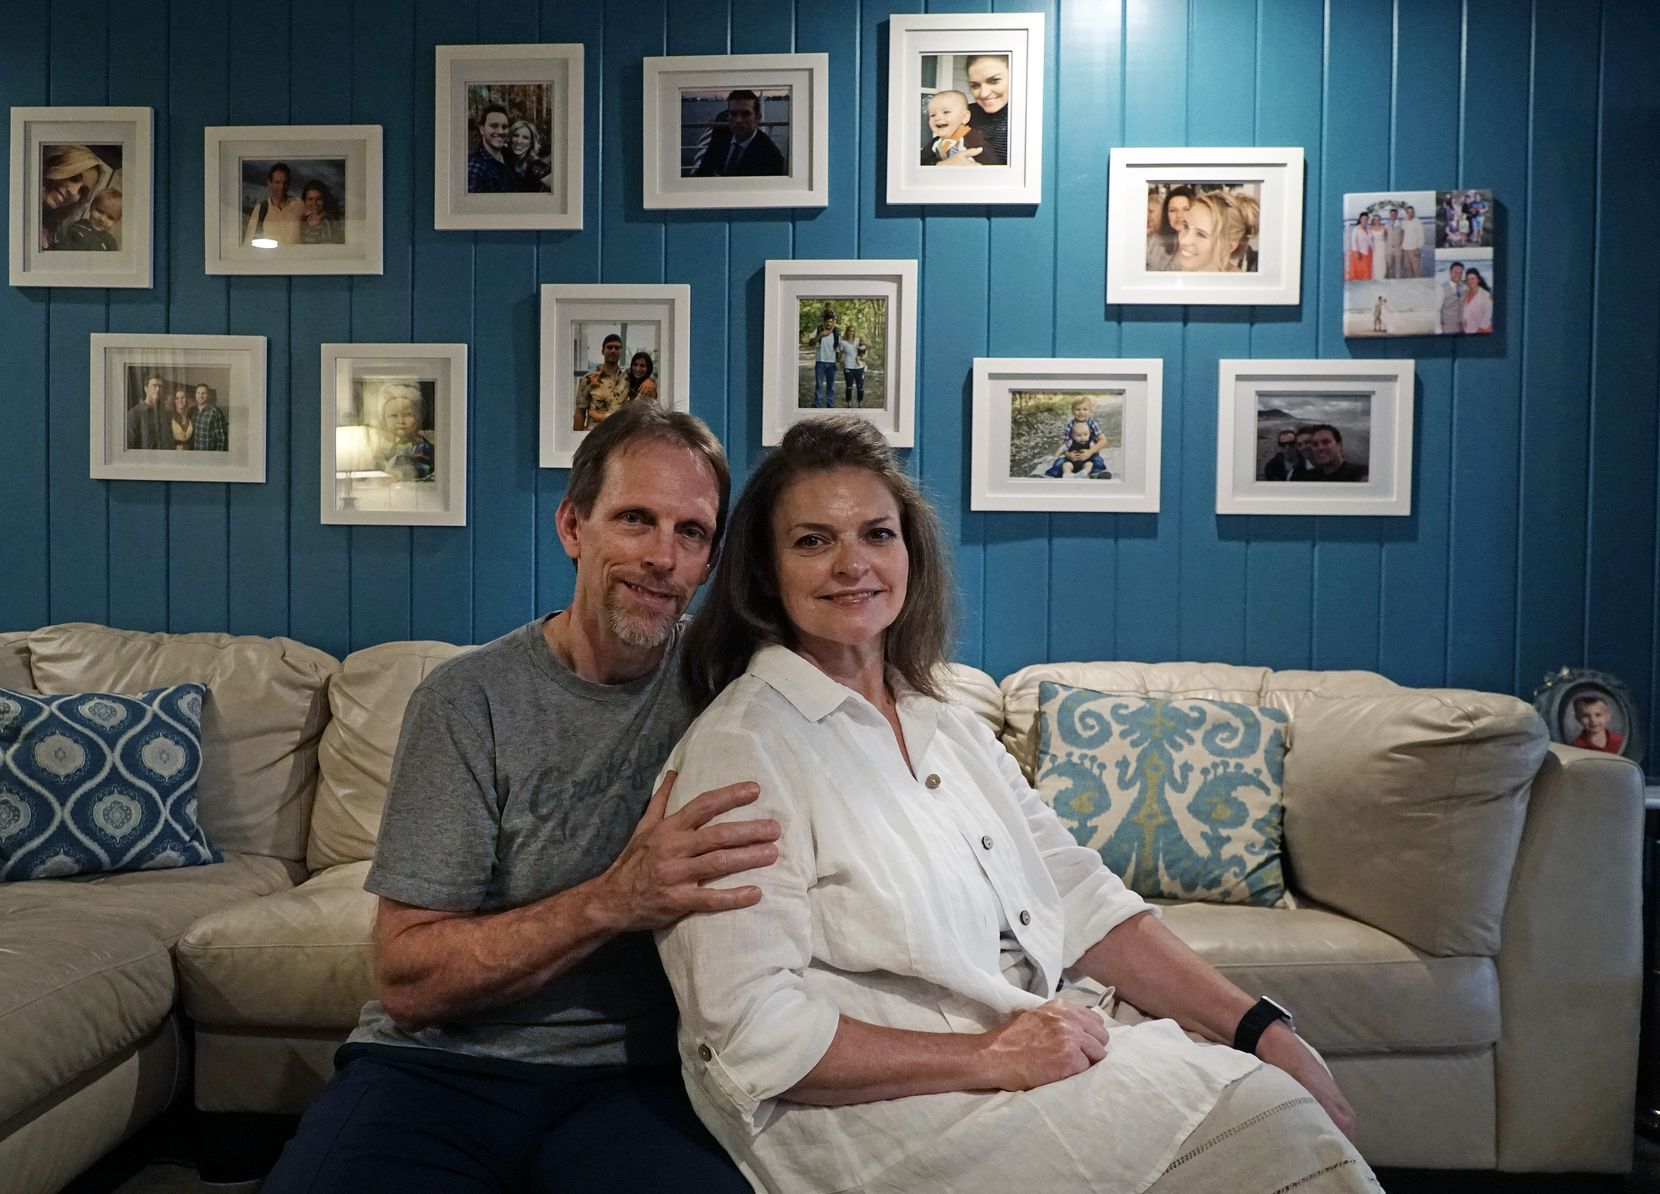 For Roger and Grace Weir of Irving, flight benefits from her job at Southwest Airlines come in handy for visiting their grandson in North Carolina. They also have two grandkids nearby them and one on the way in Hawaii.